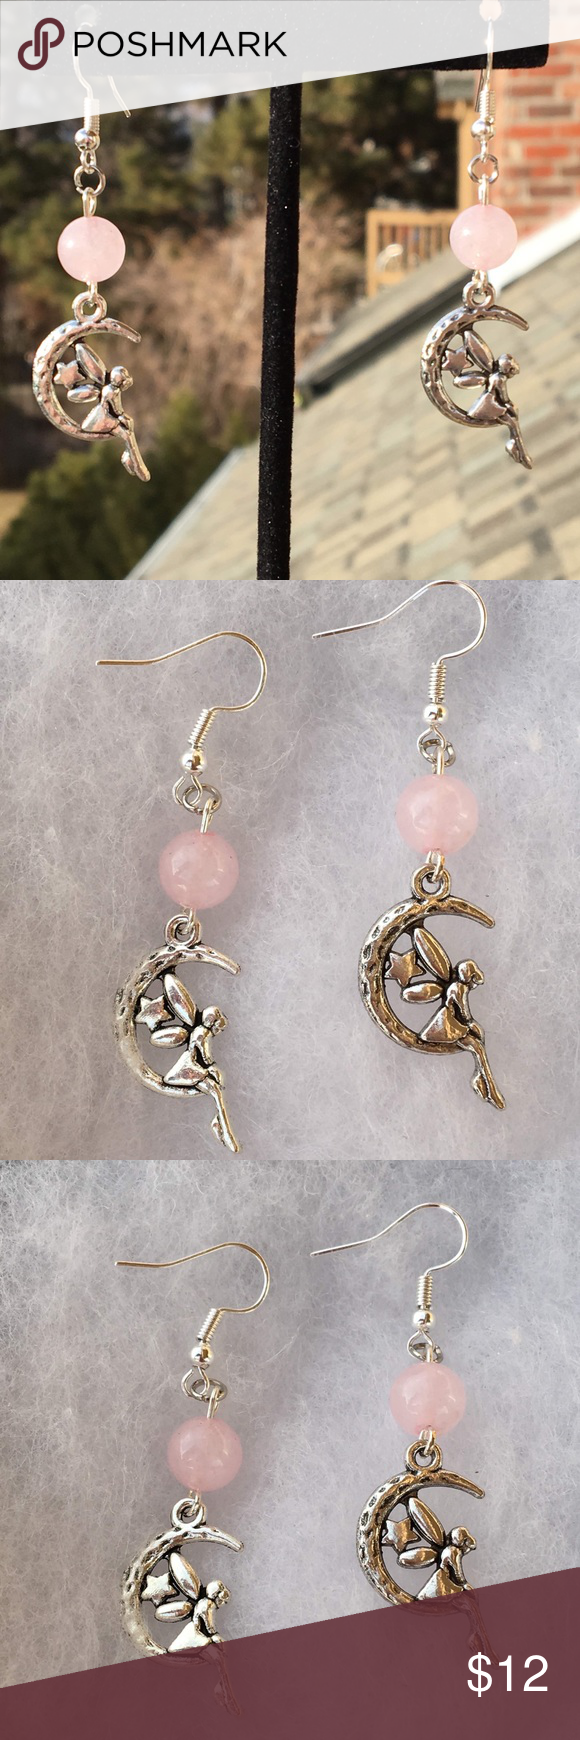 39f9c826d Pink Rose Quartz Fairy Earrings These beautiful earrings are made with  natural rose quartz and silver